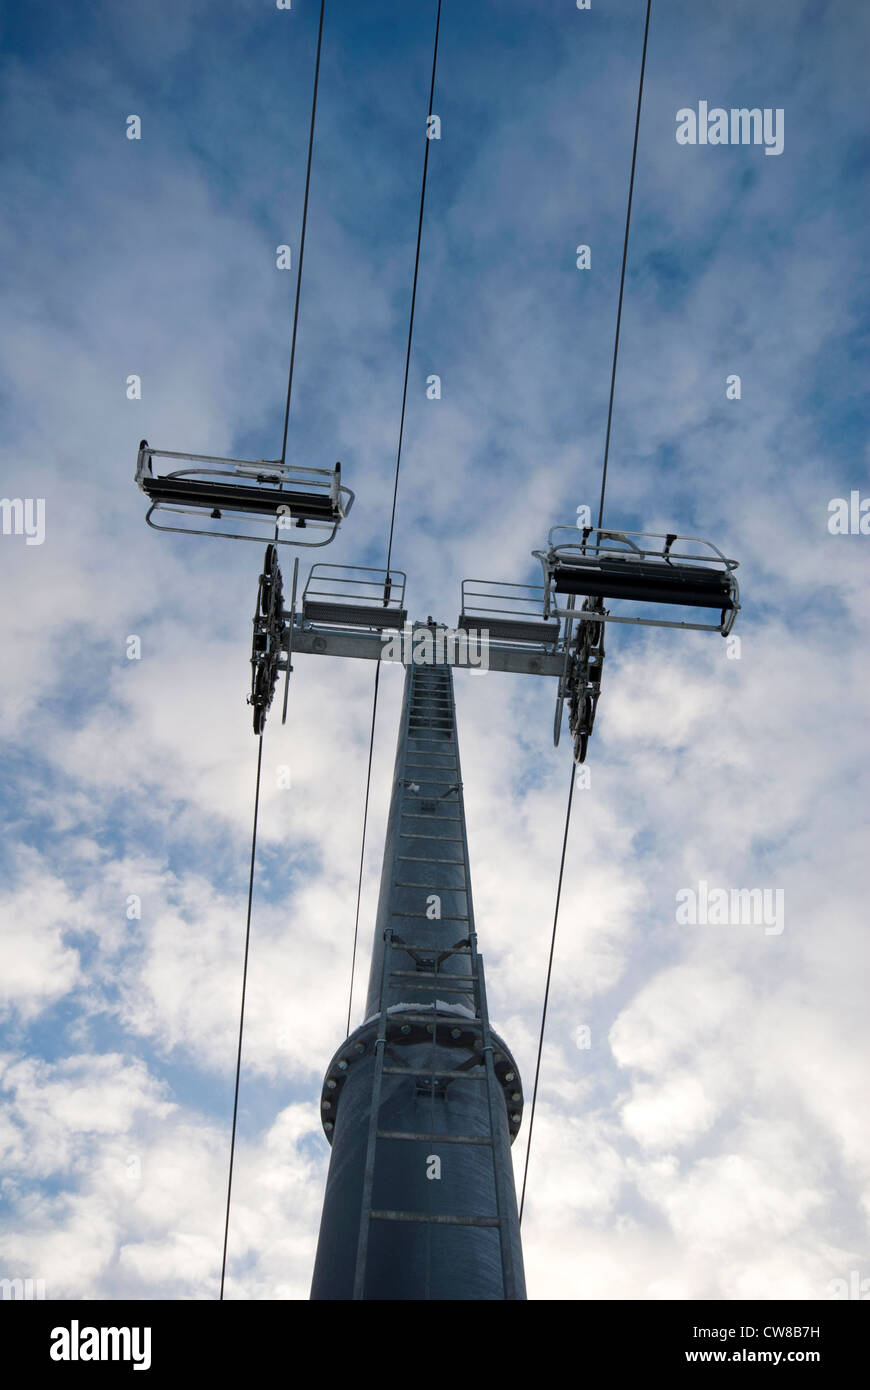 Empty chairlifts against cloudy blue sky Stock Photo